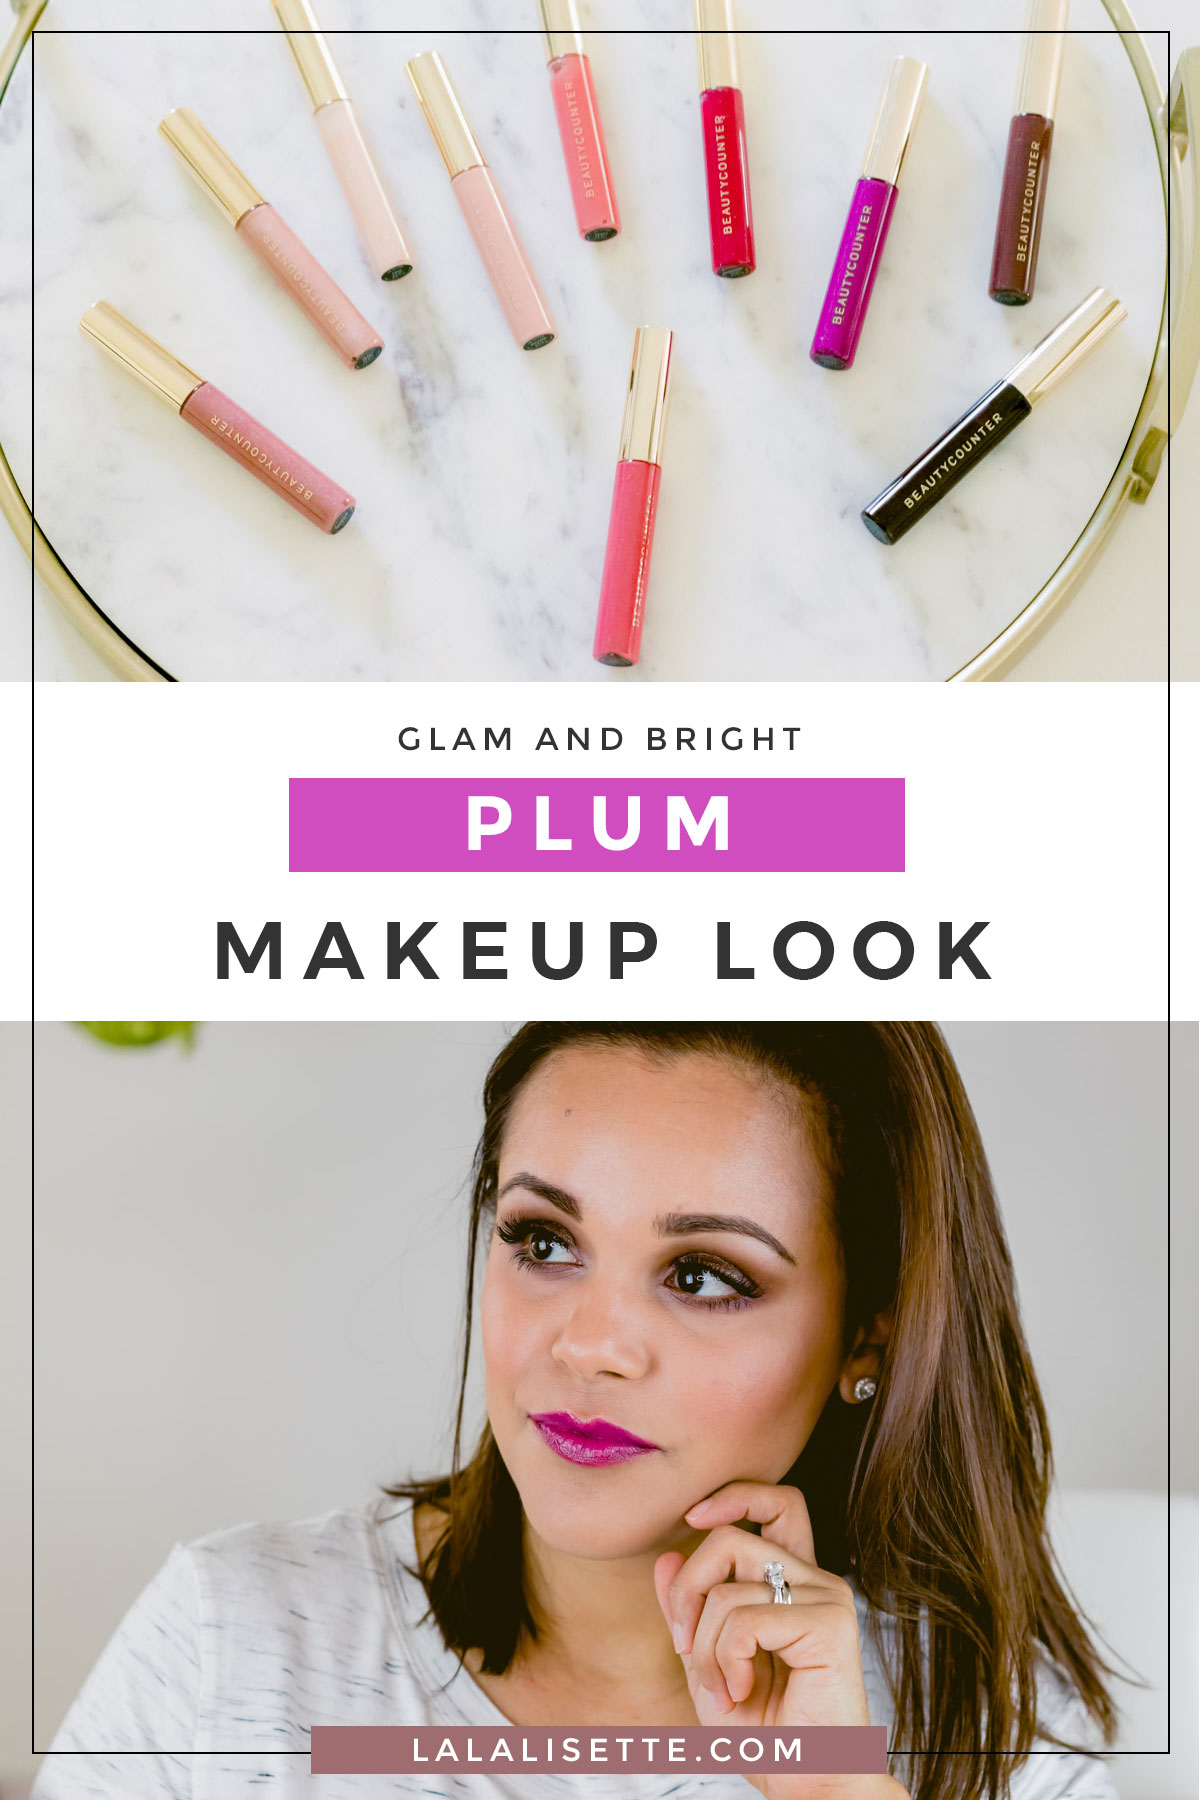 A glam plum makeup look with Beautycounter #saferbeauty #switchtosafer #cleanbeautyboss #cleanbeauty